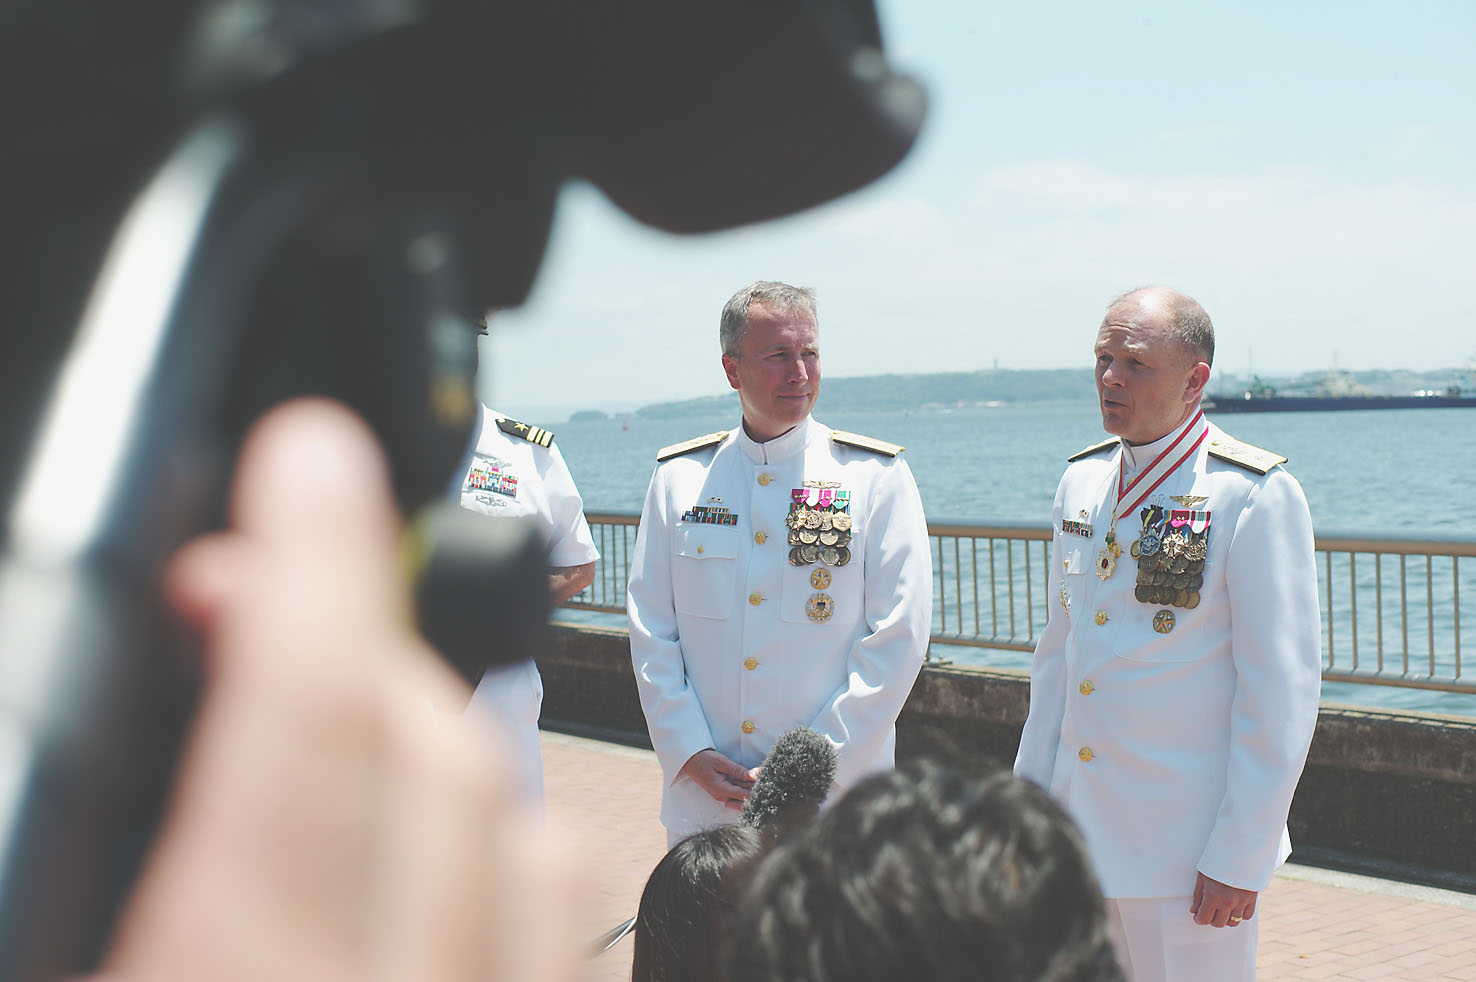 Rear Adms. Brian Fort (left) and Gregory Fenton speak to reporters in Yokosuka on Wednesday after a change-of-command ceremony in which Fort assumed command of U.S. naval forces in Japan from Fenton.   RYUSEI TAKAHASHI